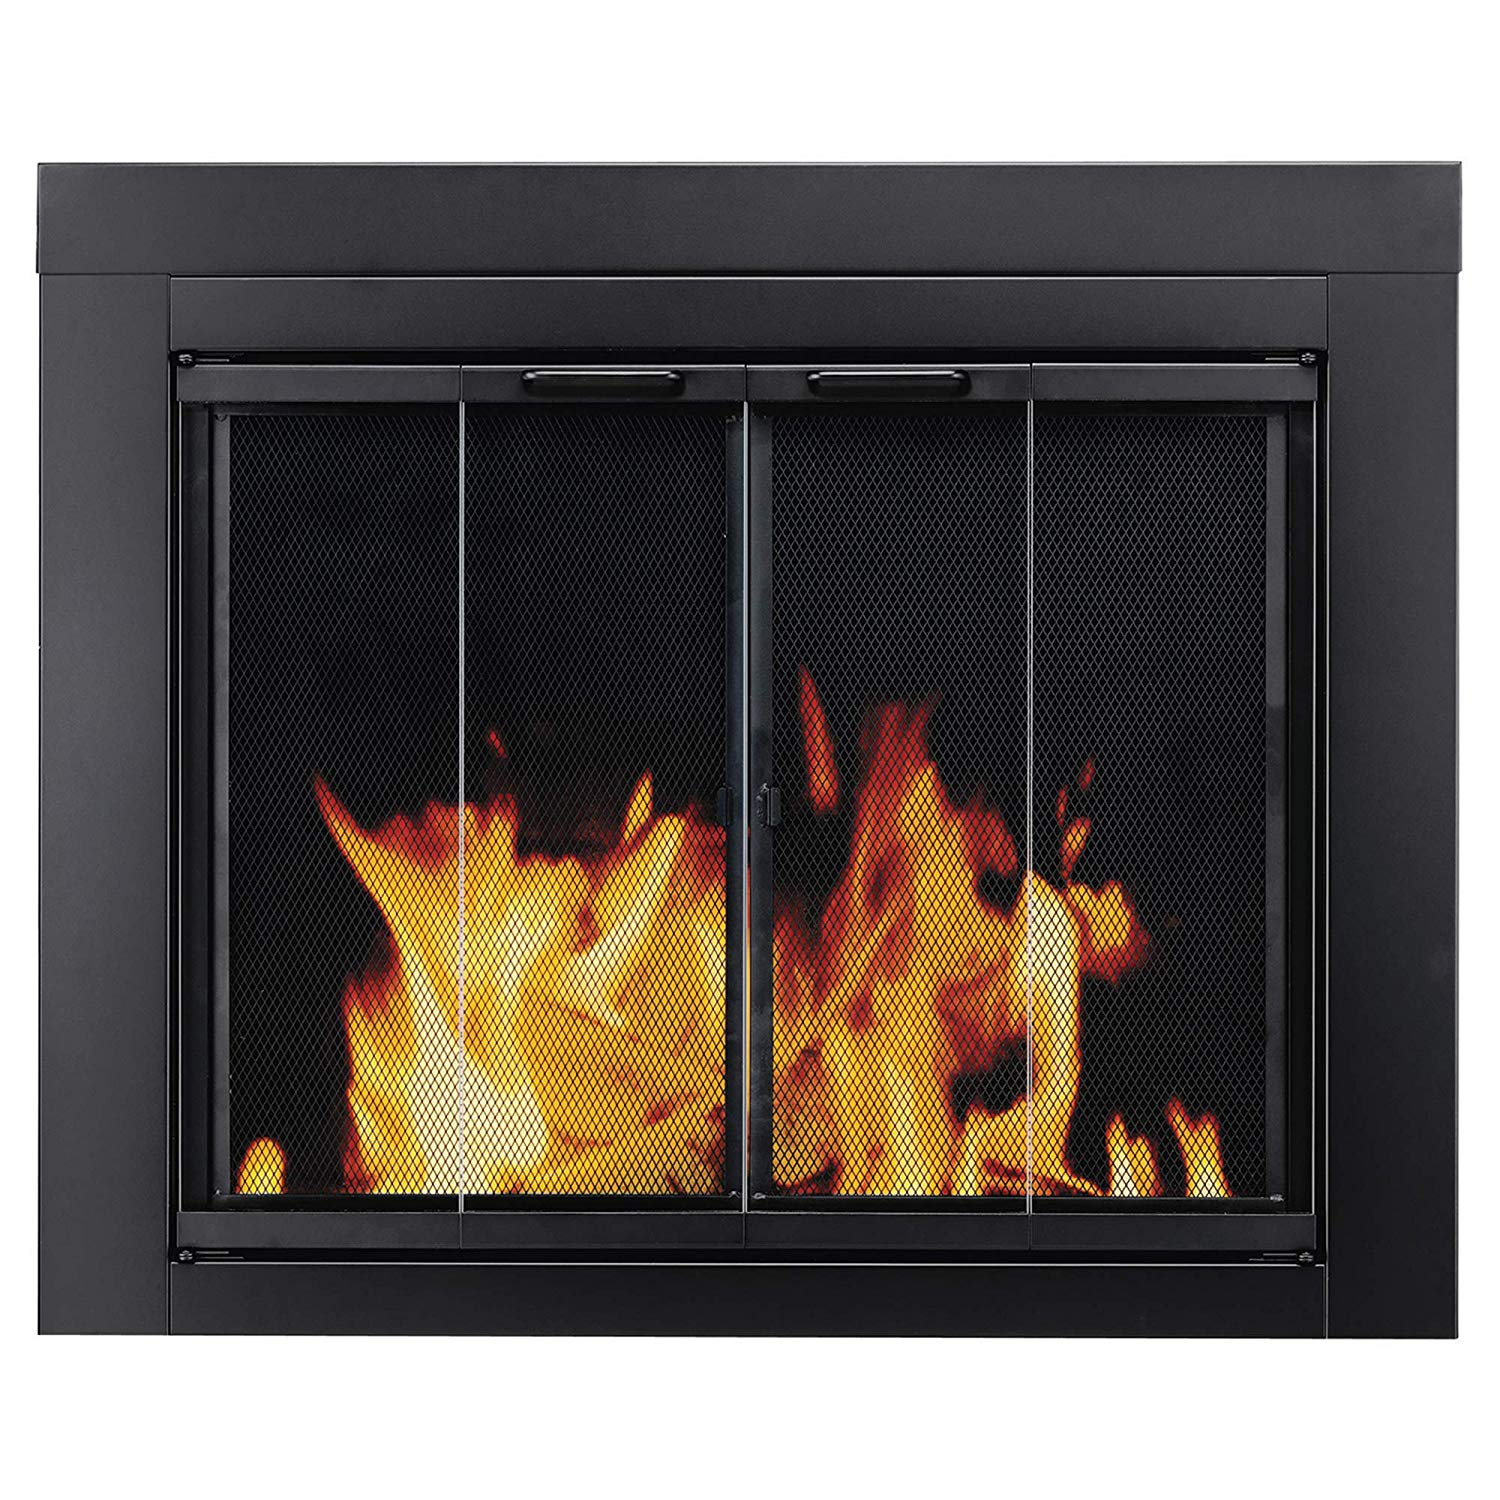 Fireplace Damper Handle Lovely Pleasant Hearth at 1000 ascot Fireplace Glass Door Black Small